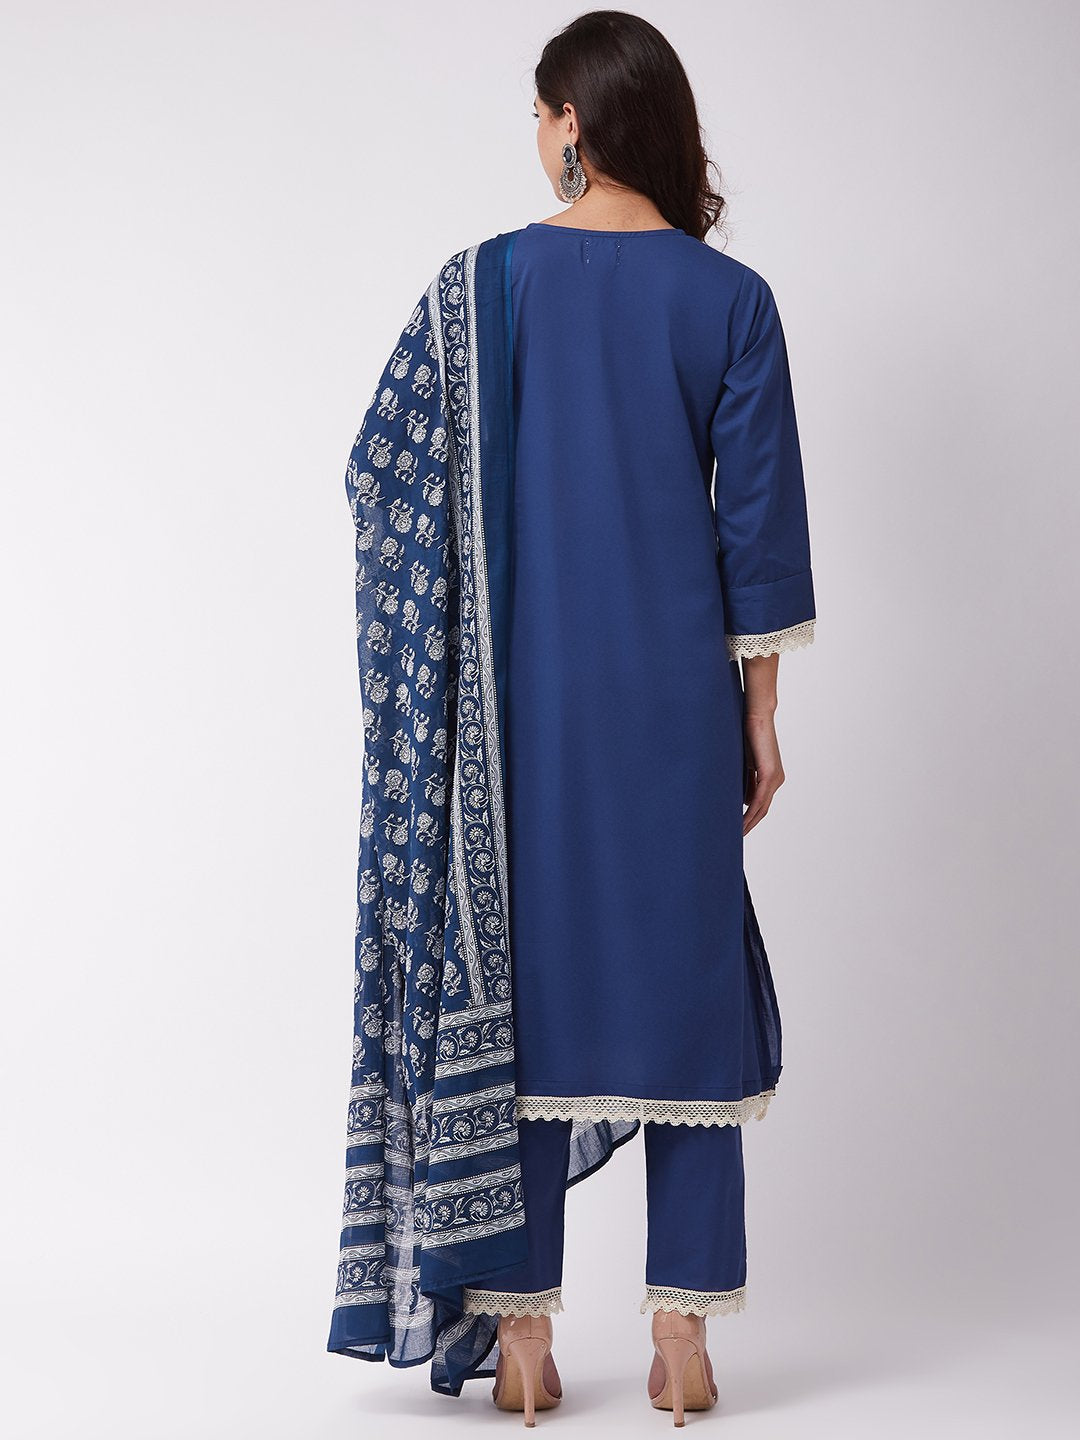 Indigo Kurta Pant Set With White Lace